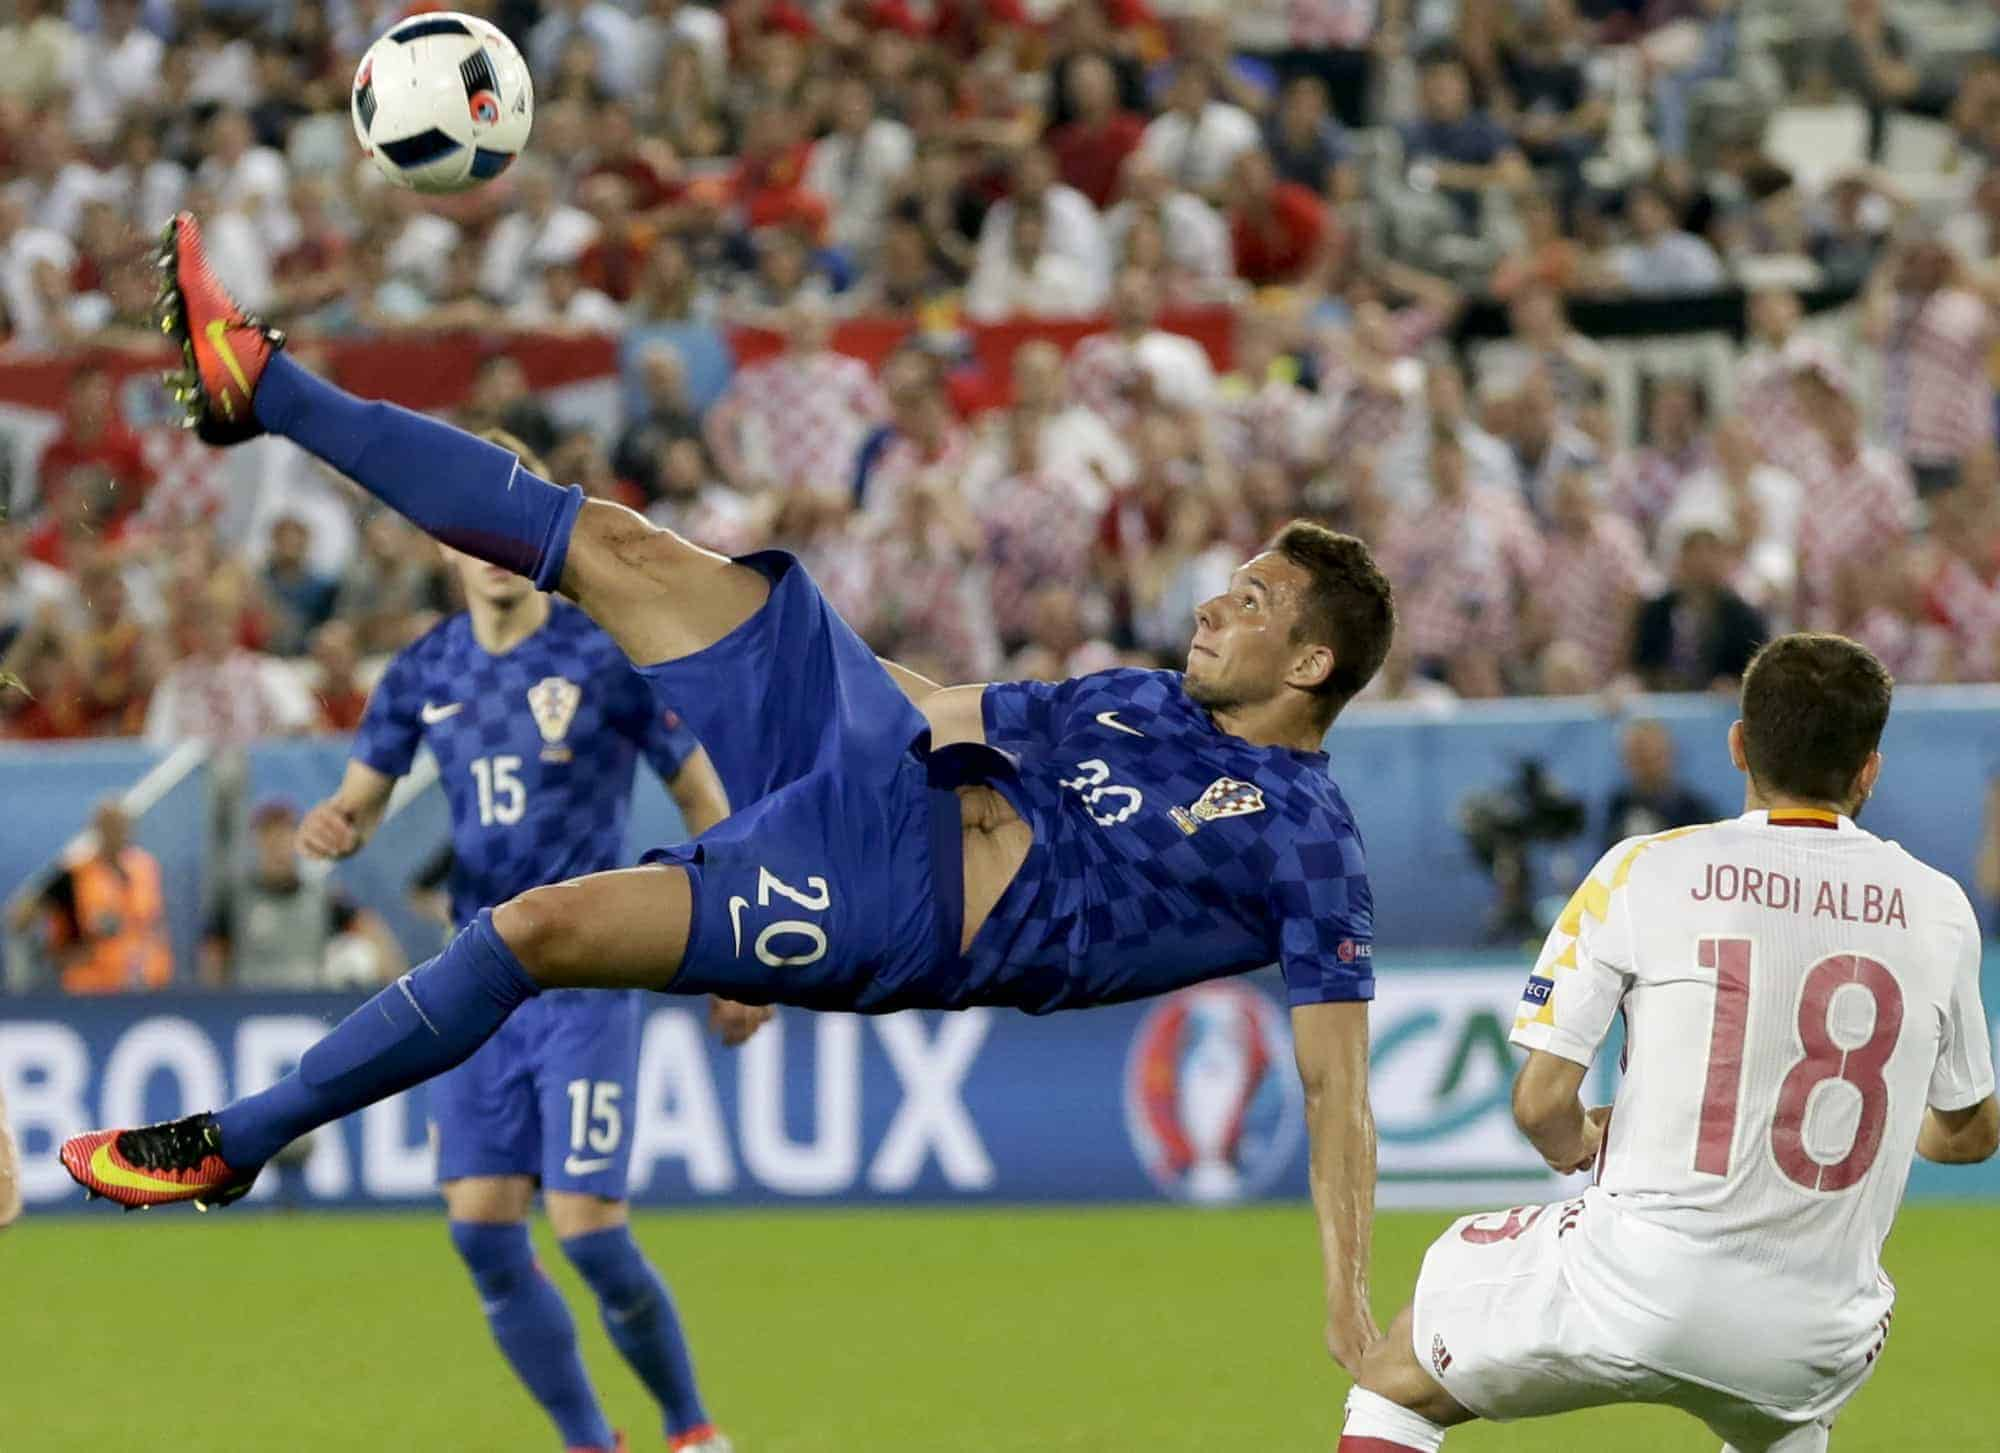 Croatia's Marko Pjaca goes for an overhead kick during the Euro 2016 Group D soccer match between Croatia and Spain at the Nouveau Stade in Bordeaux, France, Tuesday, June 21, 2016. (AP Photo/Petr David Josek)